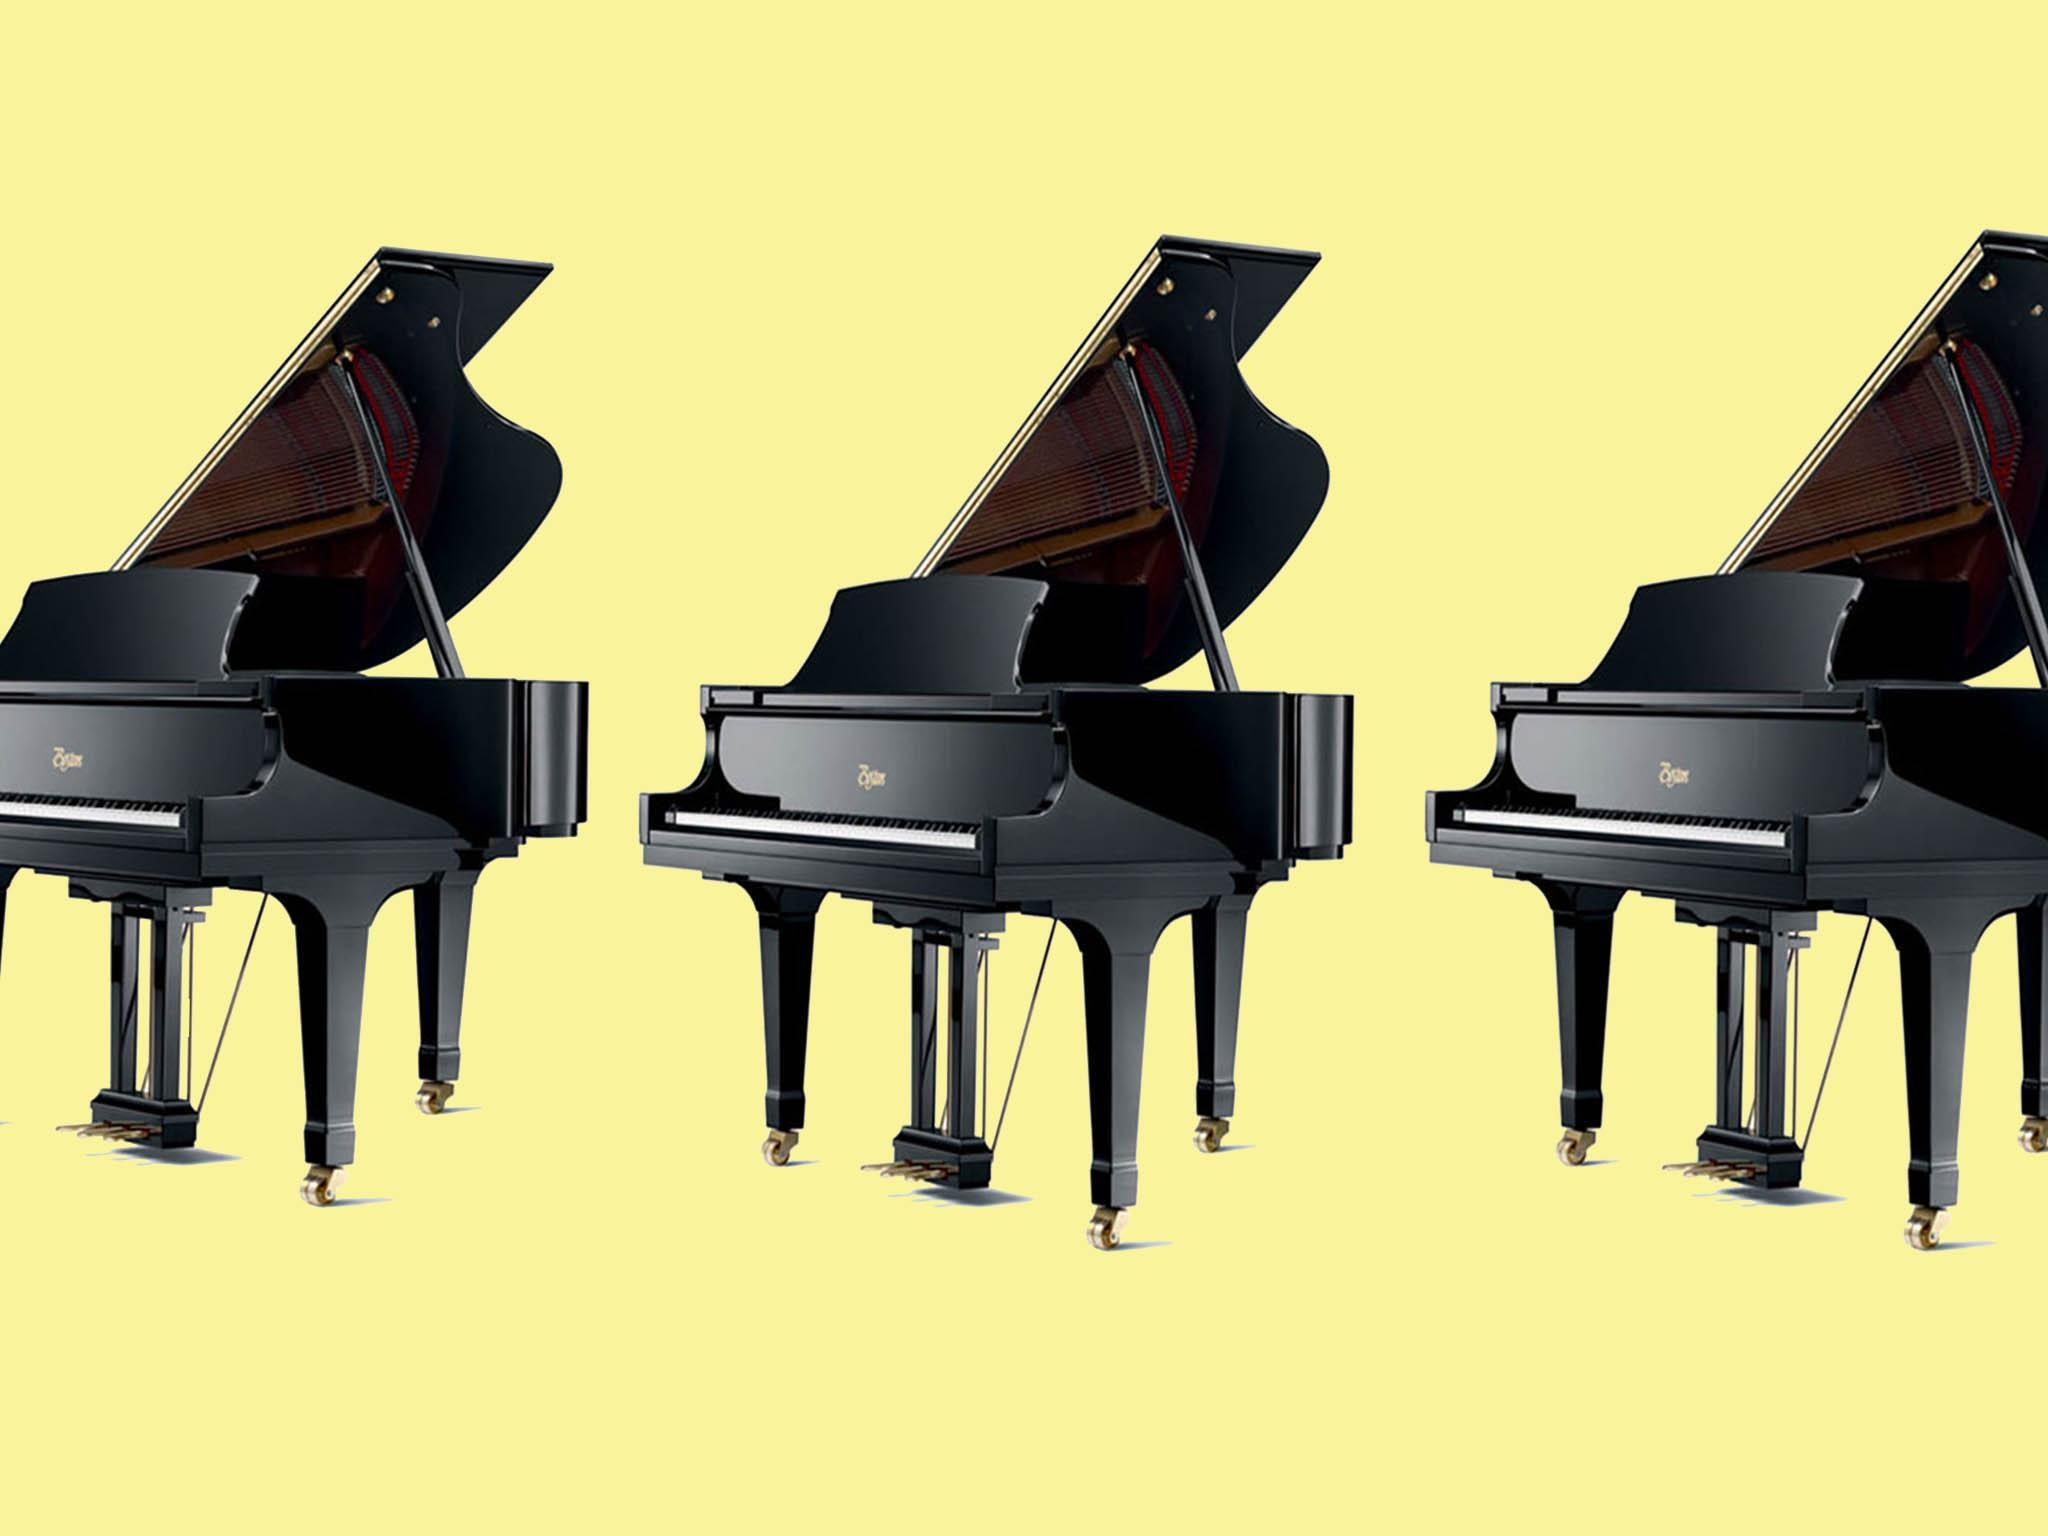 7 Best Acoustic Pianos The Independent